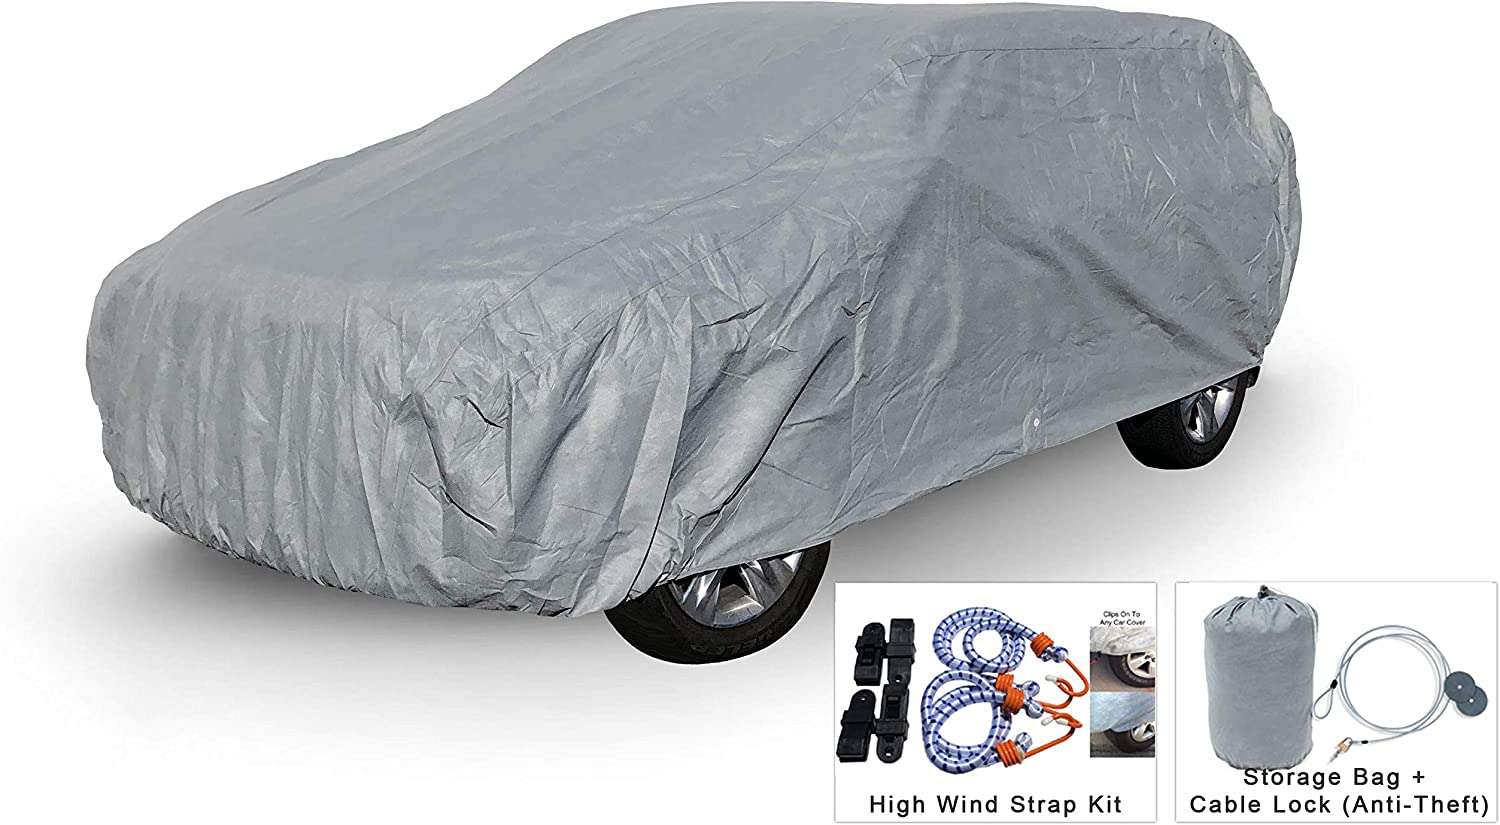 Weatherproof SUV Car Cover Compatible with Toyota RAV4 2006-2019 - 5L Outdoor & Indoor - Protect from Rain, Snow, Hail, UV Rays, Sun - Fleece Lining - Anti-Theft Cable Lock, Bag & Wind Straps